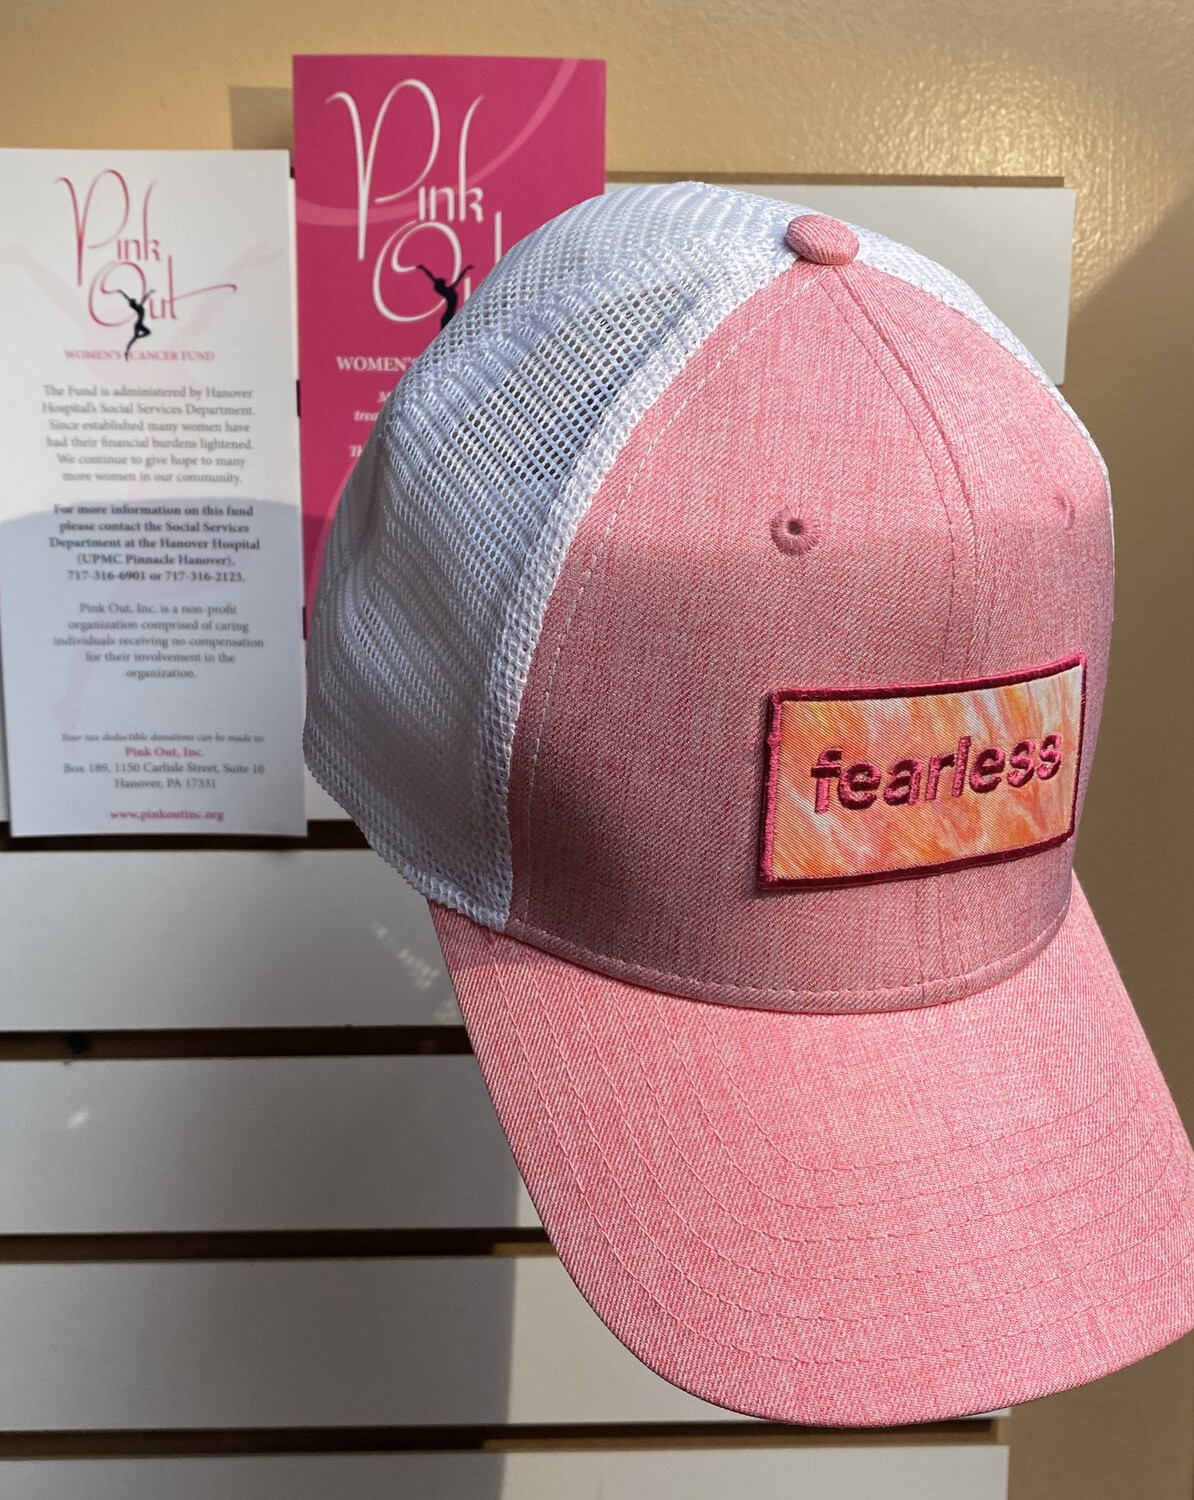 Fearless Trucker Hat Pink 20% Donated To Pink Out